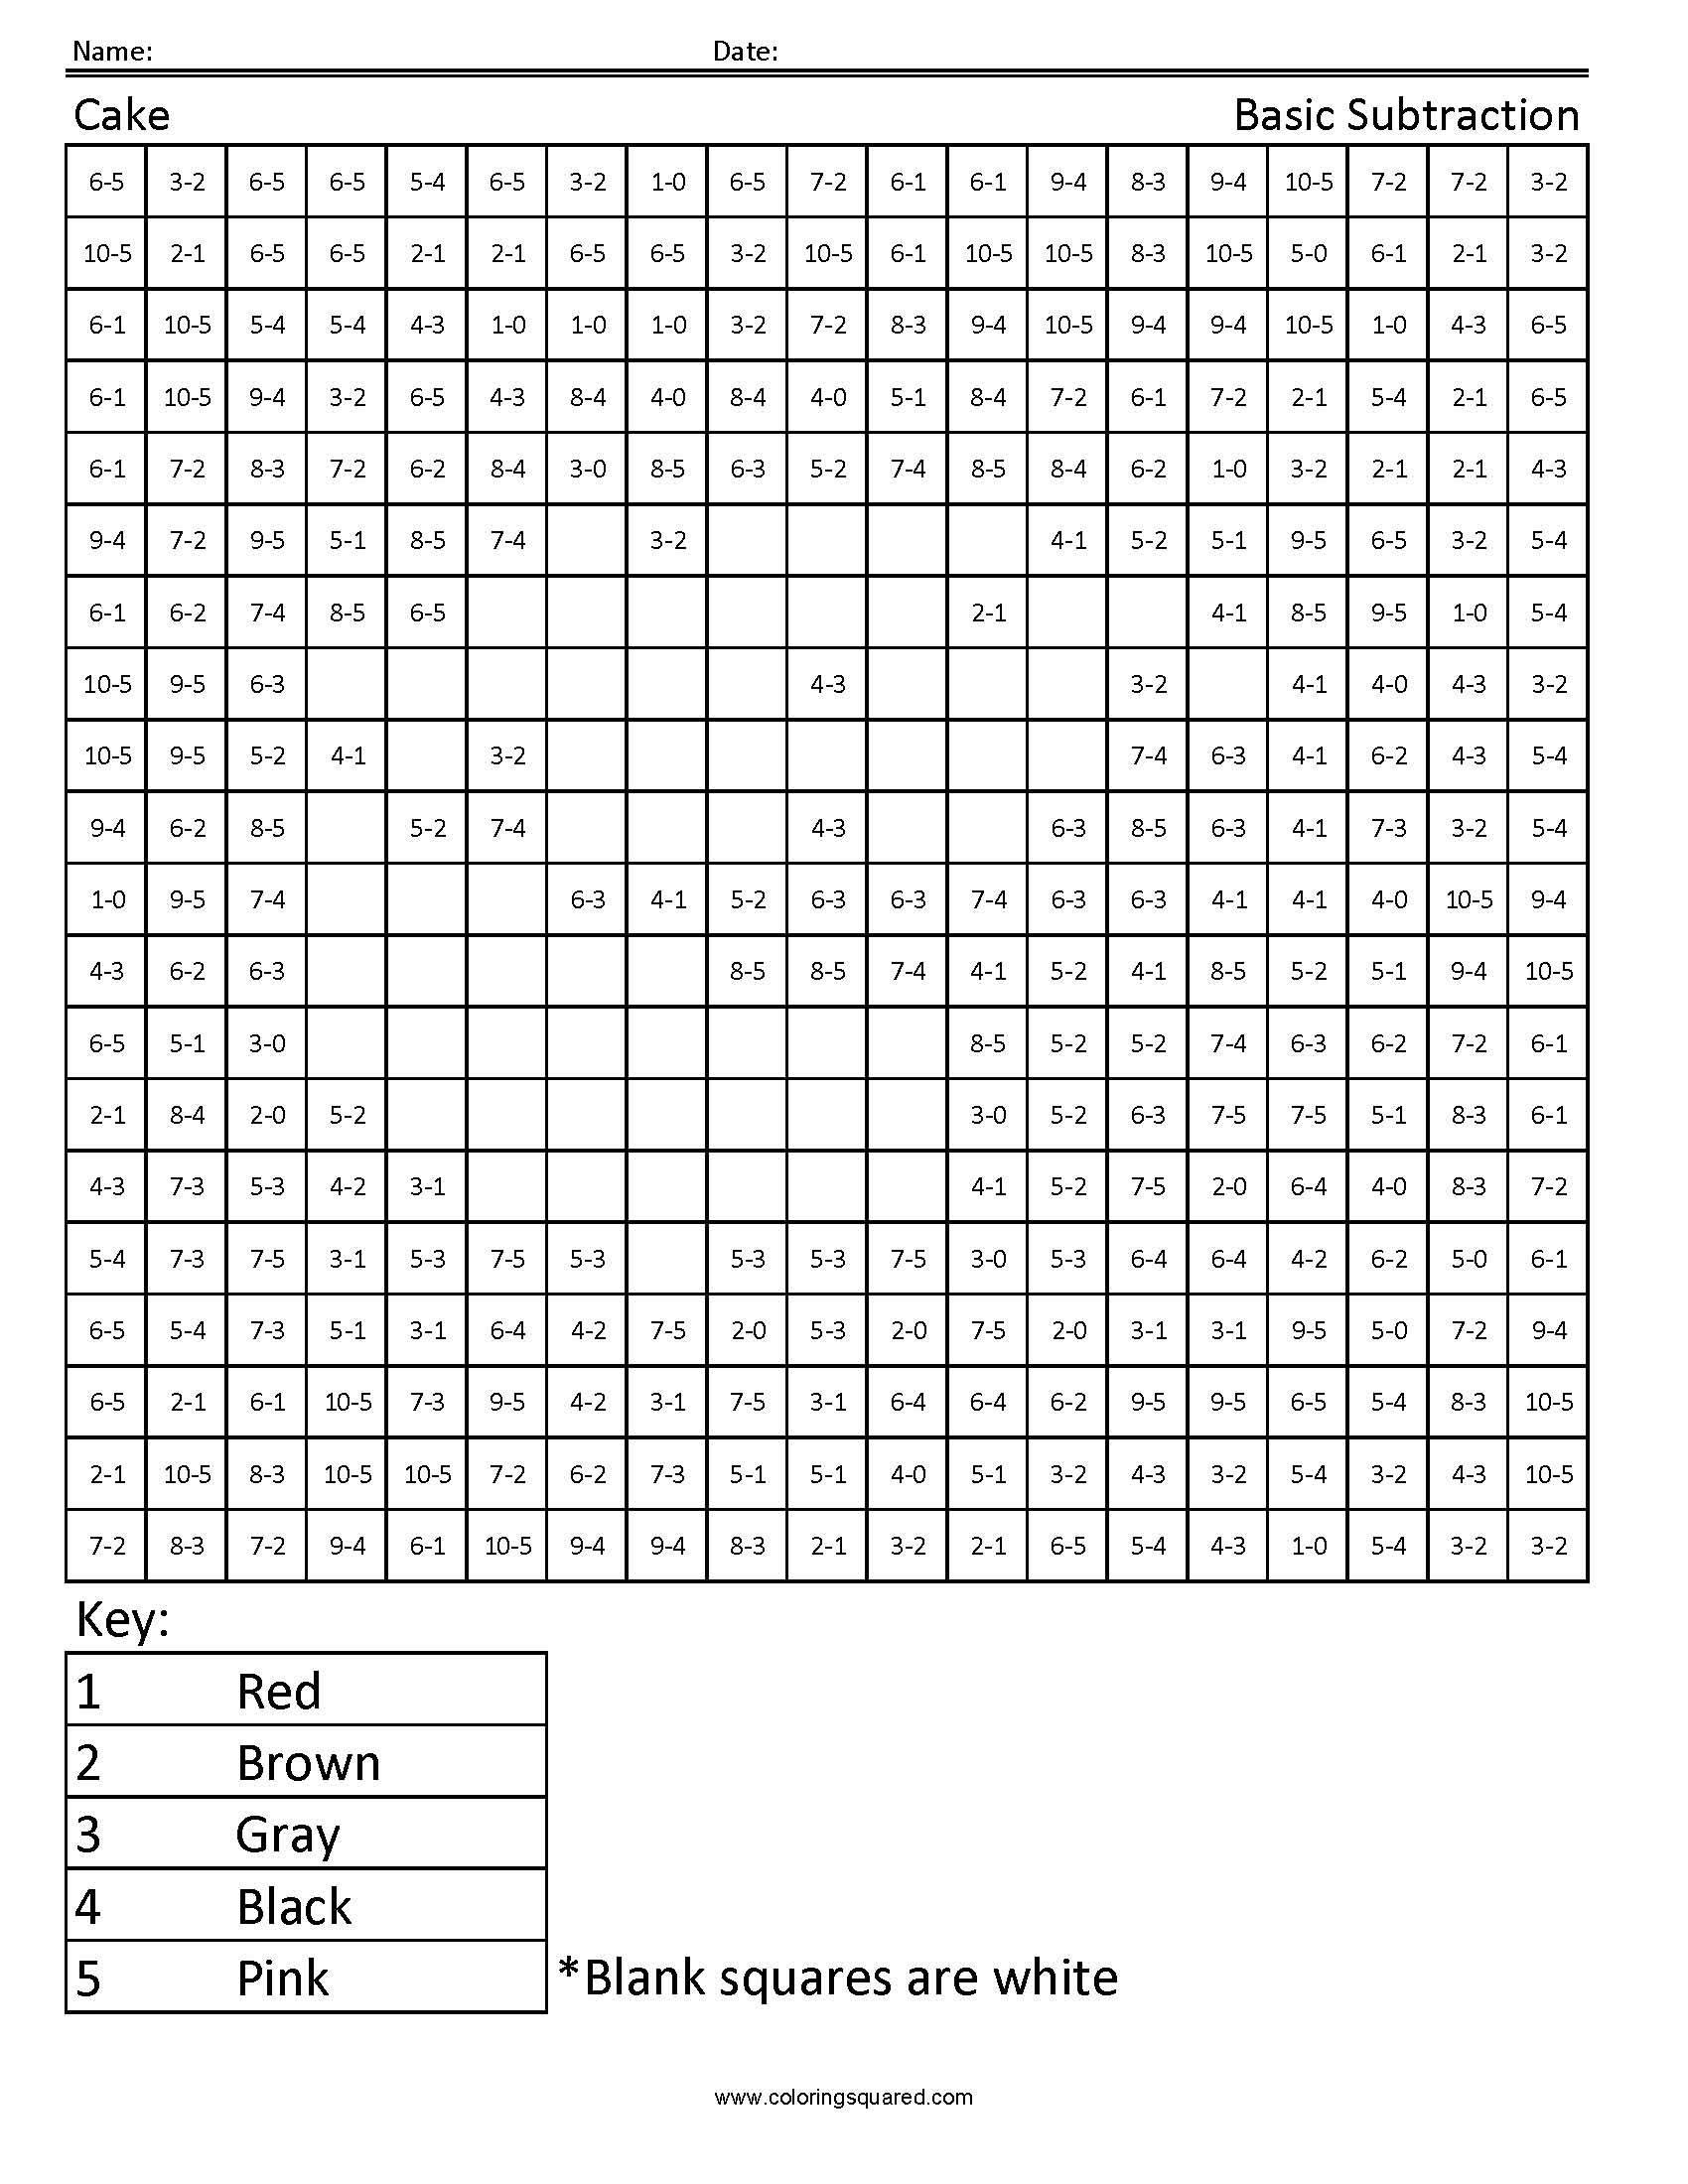 Cake Basic Subtraction Worksheet